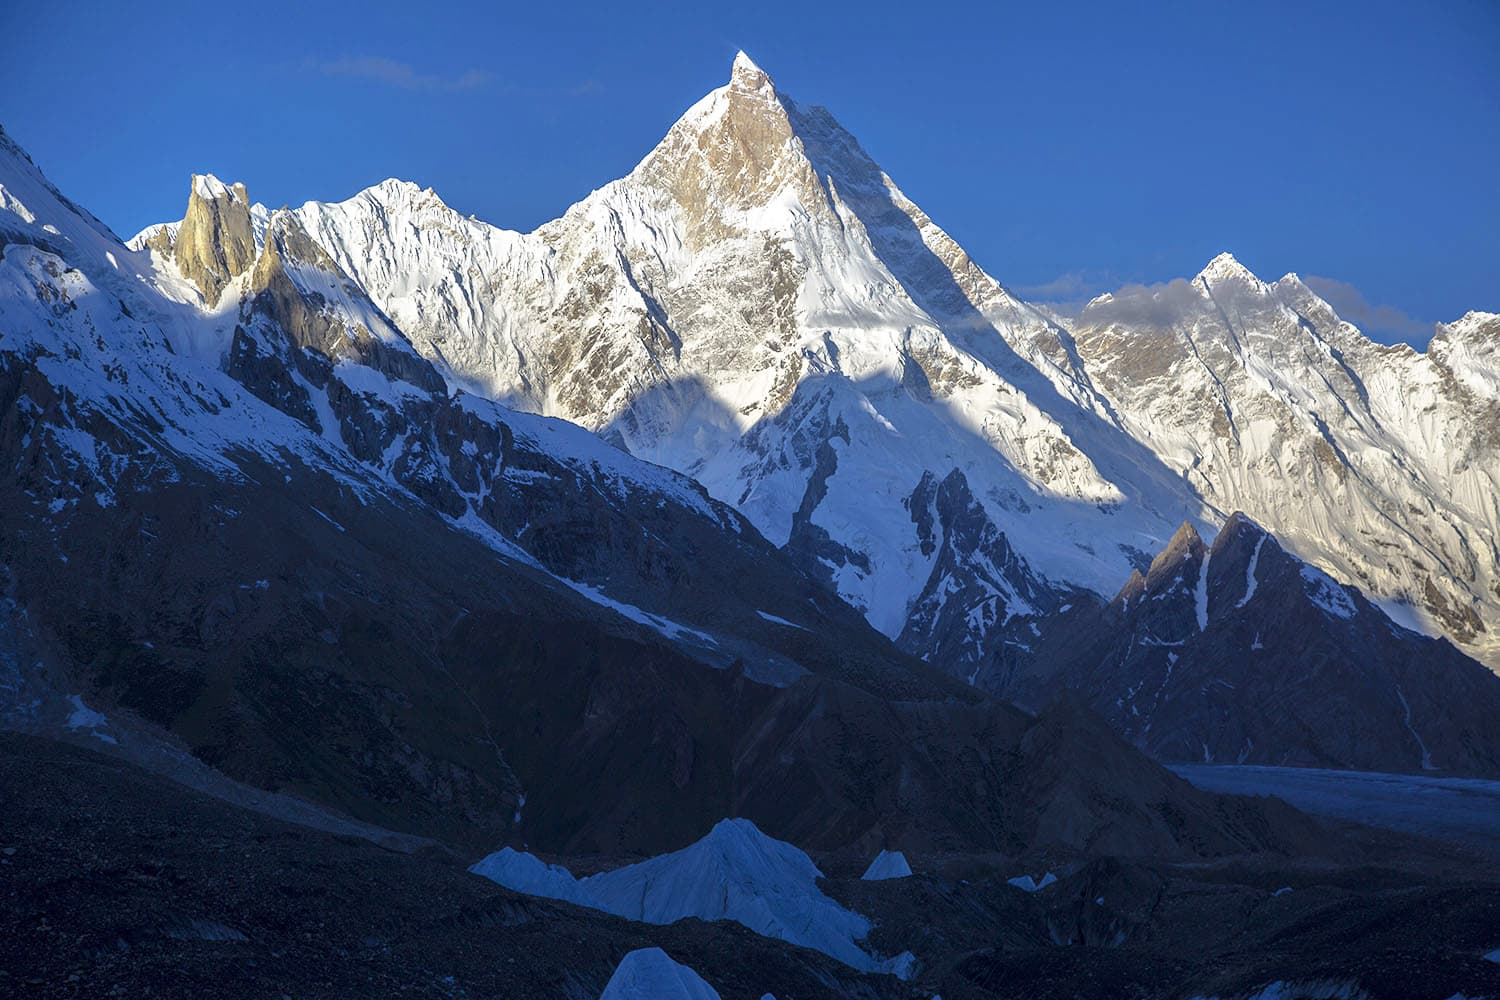 The first rays of the sun on the beautiful Masherbrum mountain.